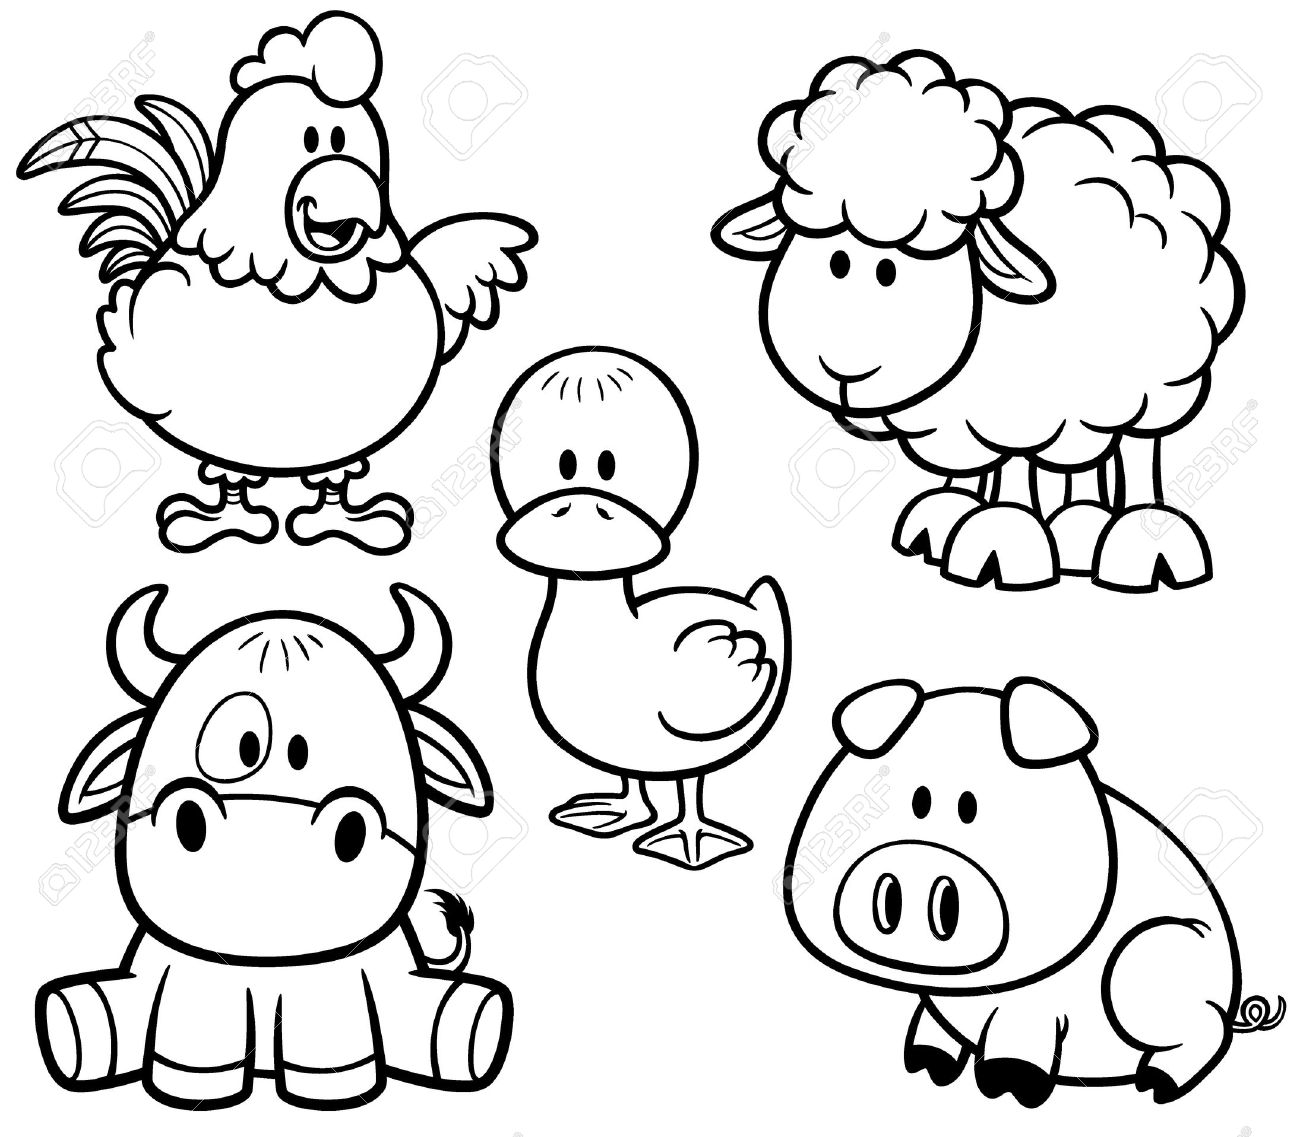 animal coloring pages free get this cute baby animal coloring pages to print y21ma coloring pages free animal